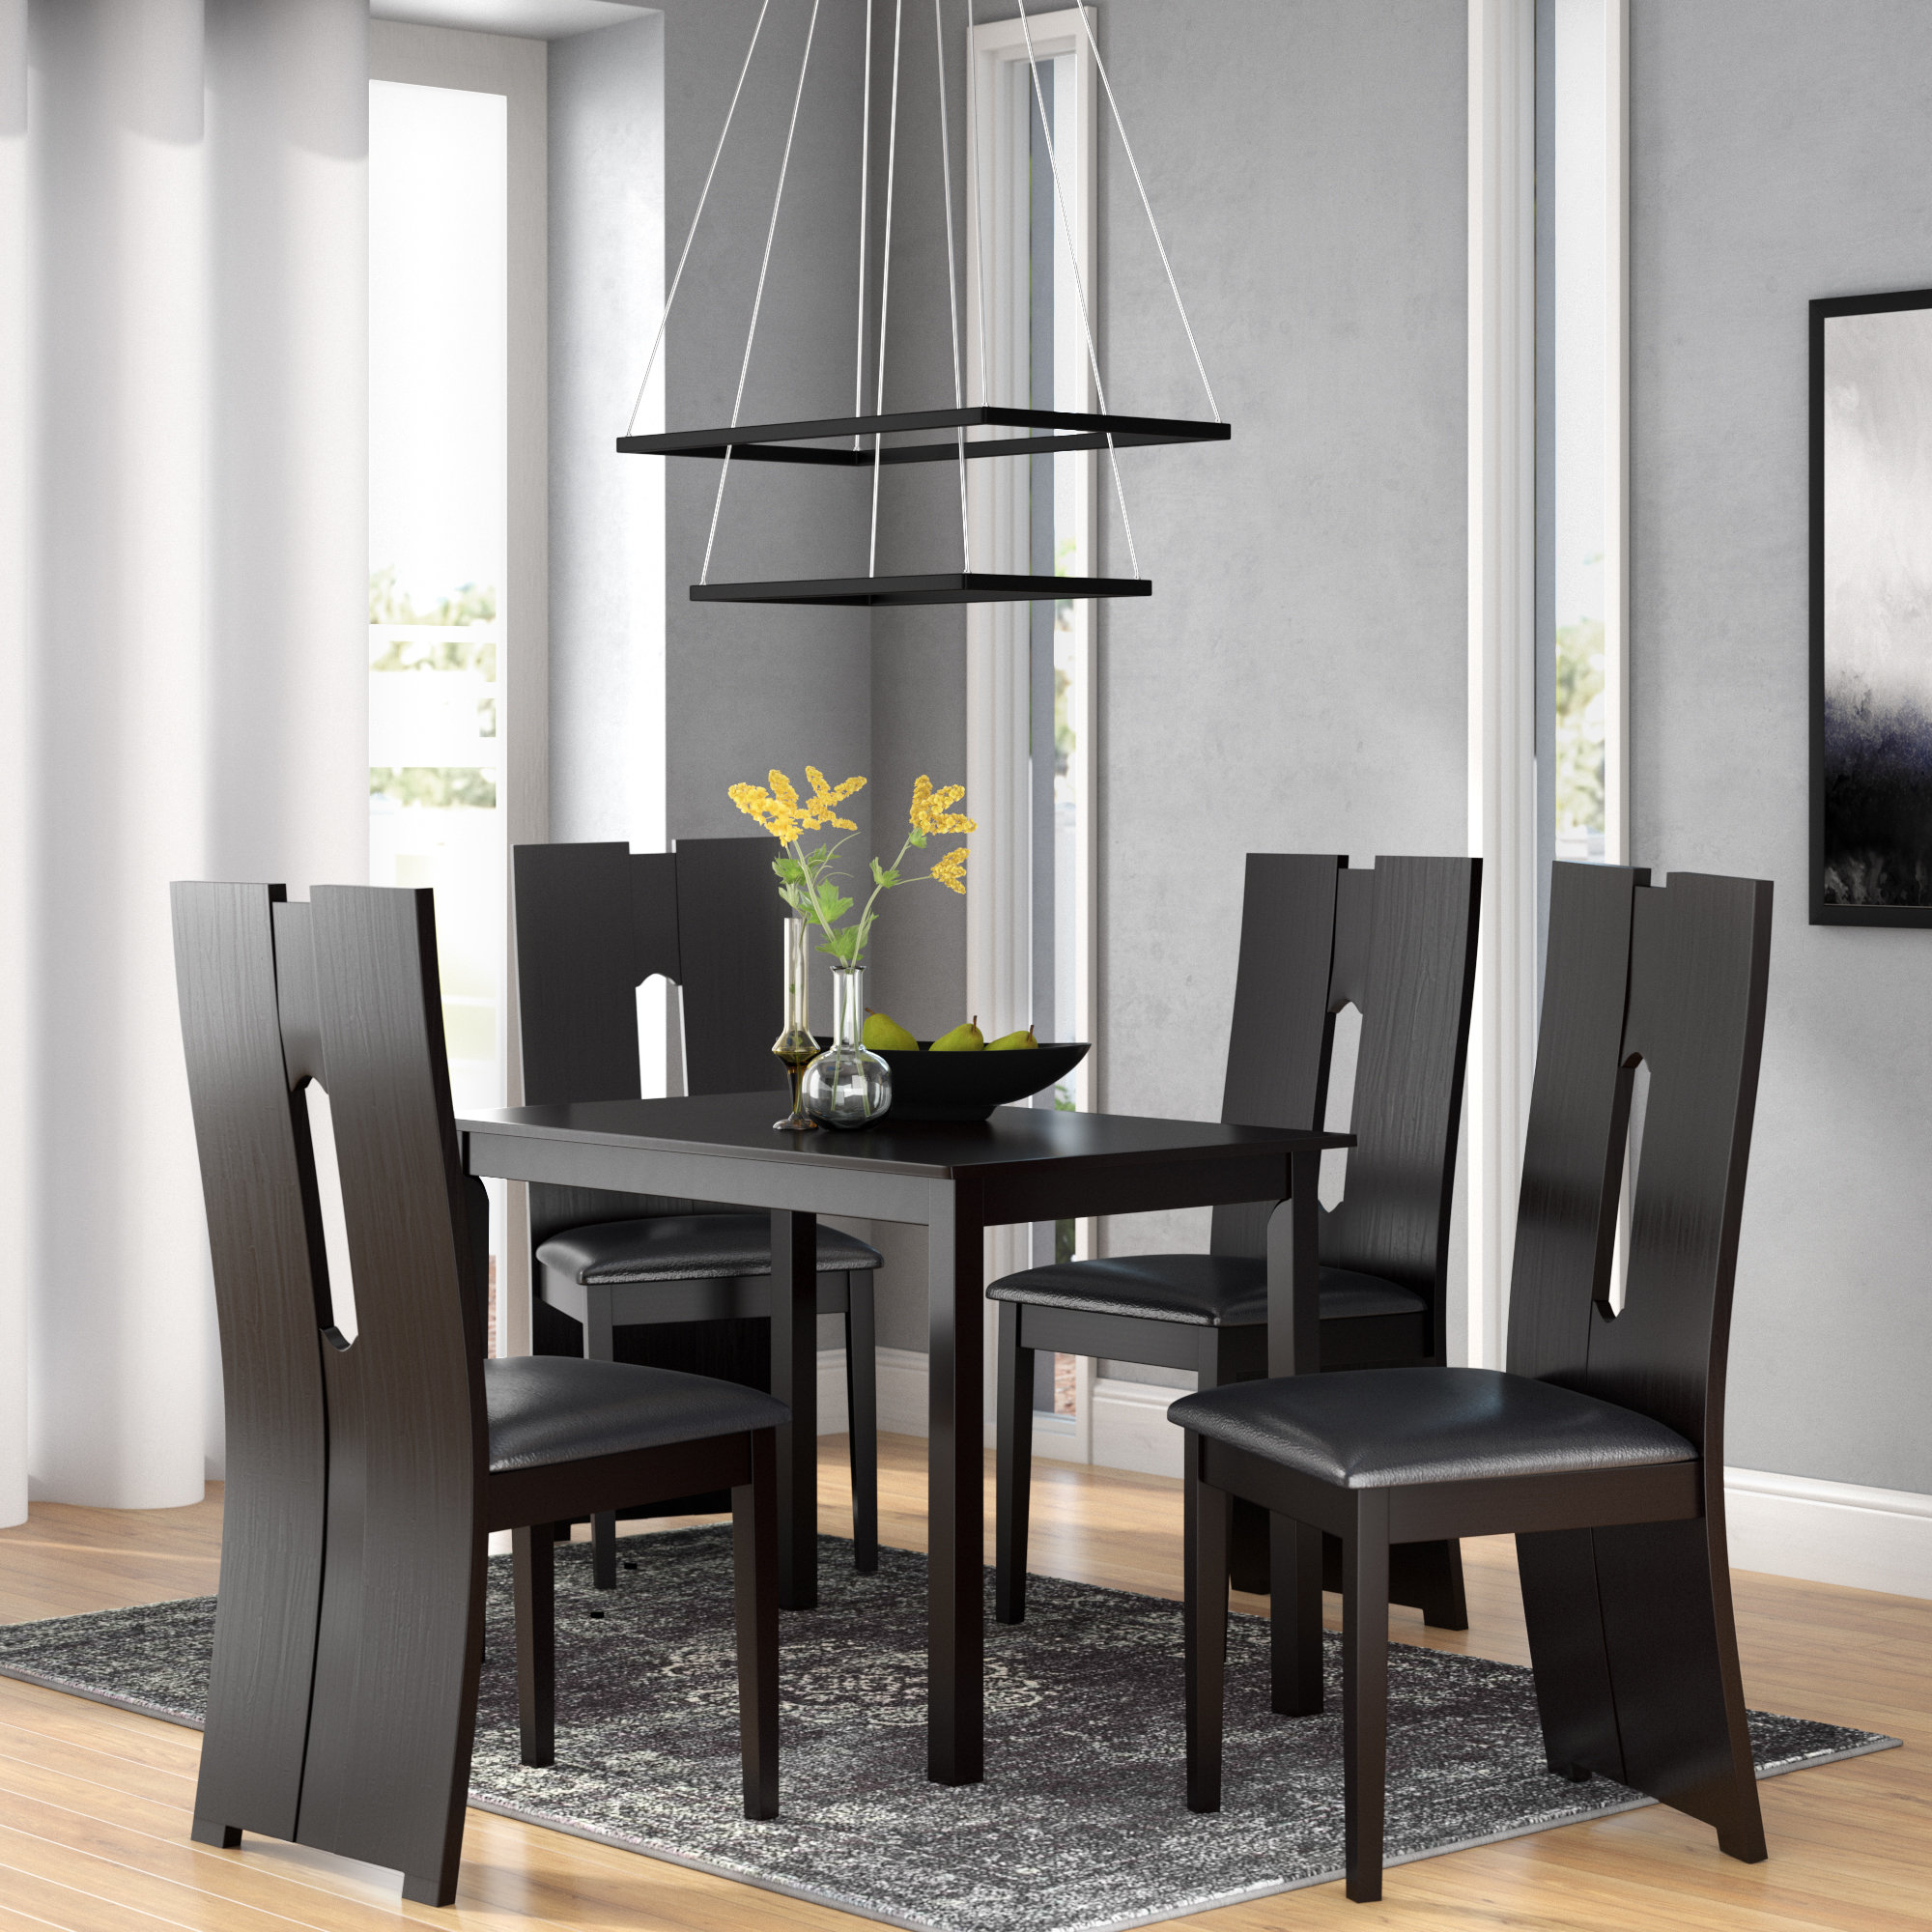 Current Orren Ellis Onsted Modern And Contemporary 5 Piece Breakfast Nook With Maynard 5 Piece Dining Sets (View 10 of 25)